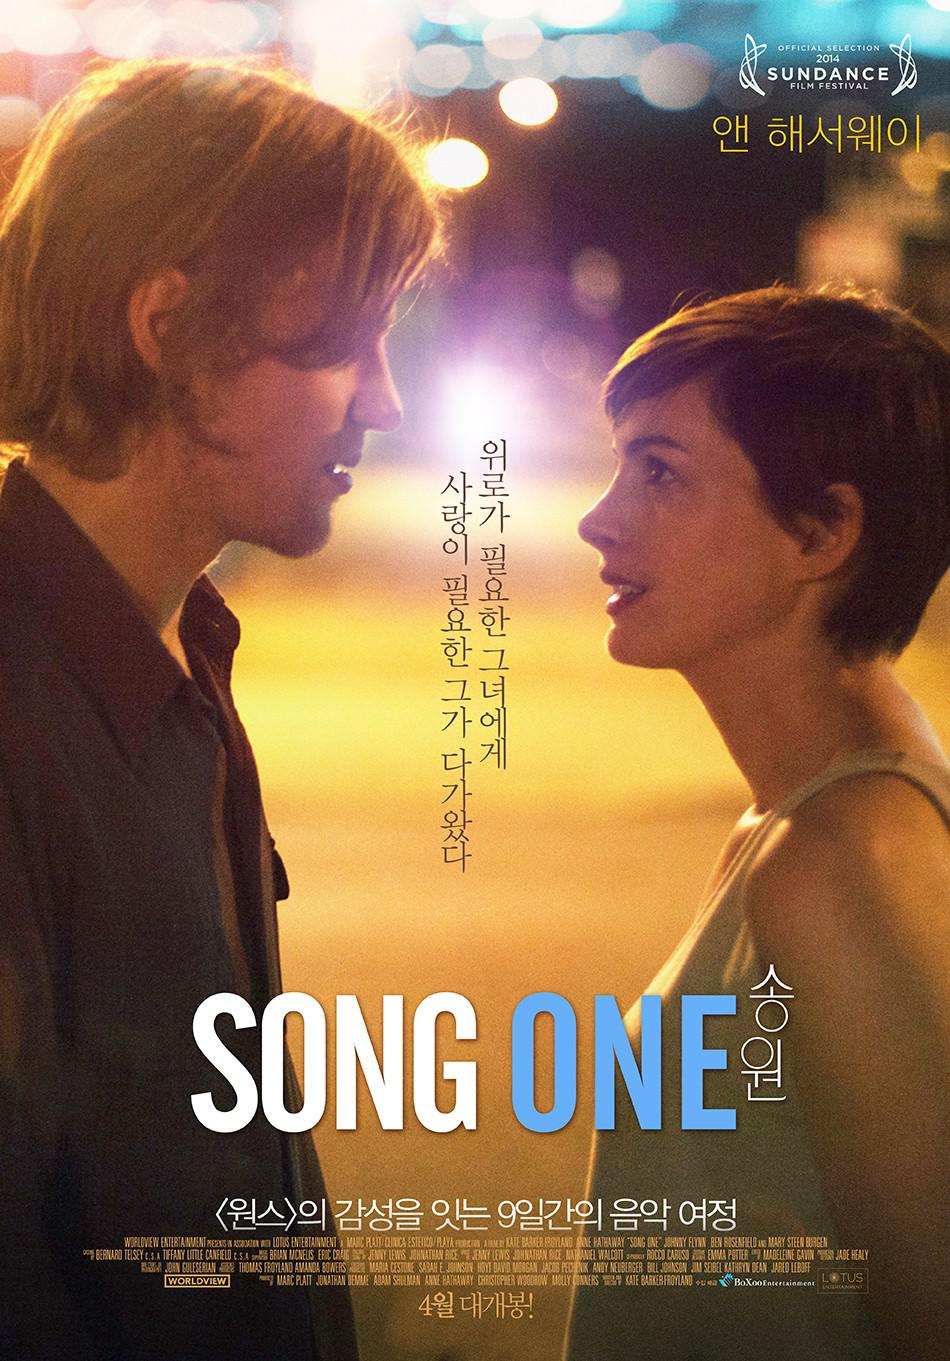 Film poster - Song one - Anne Hathaway - Johnny Flynn